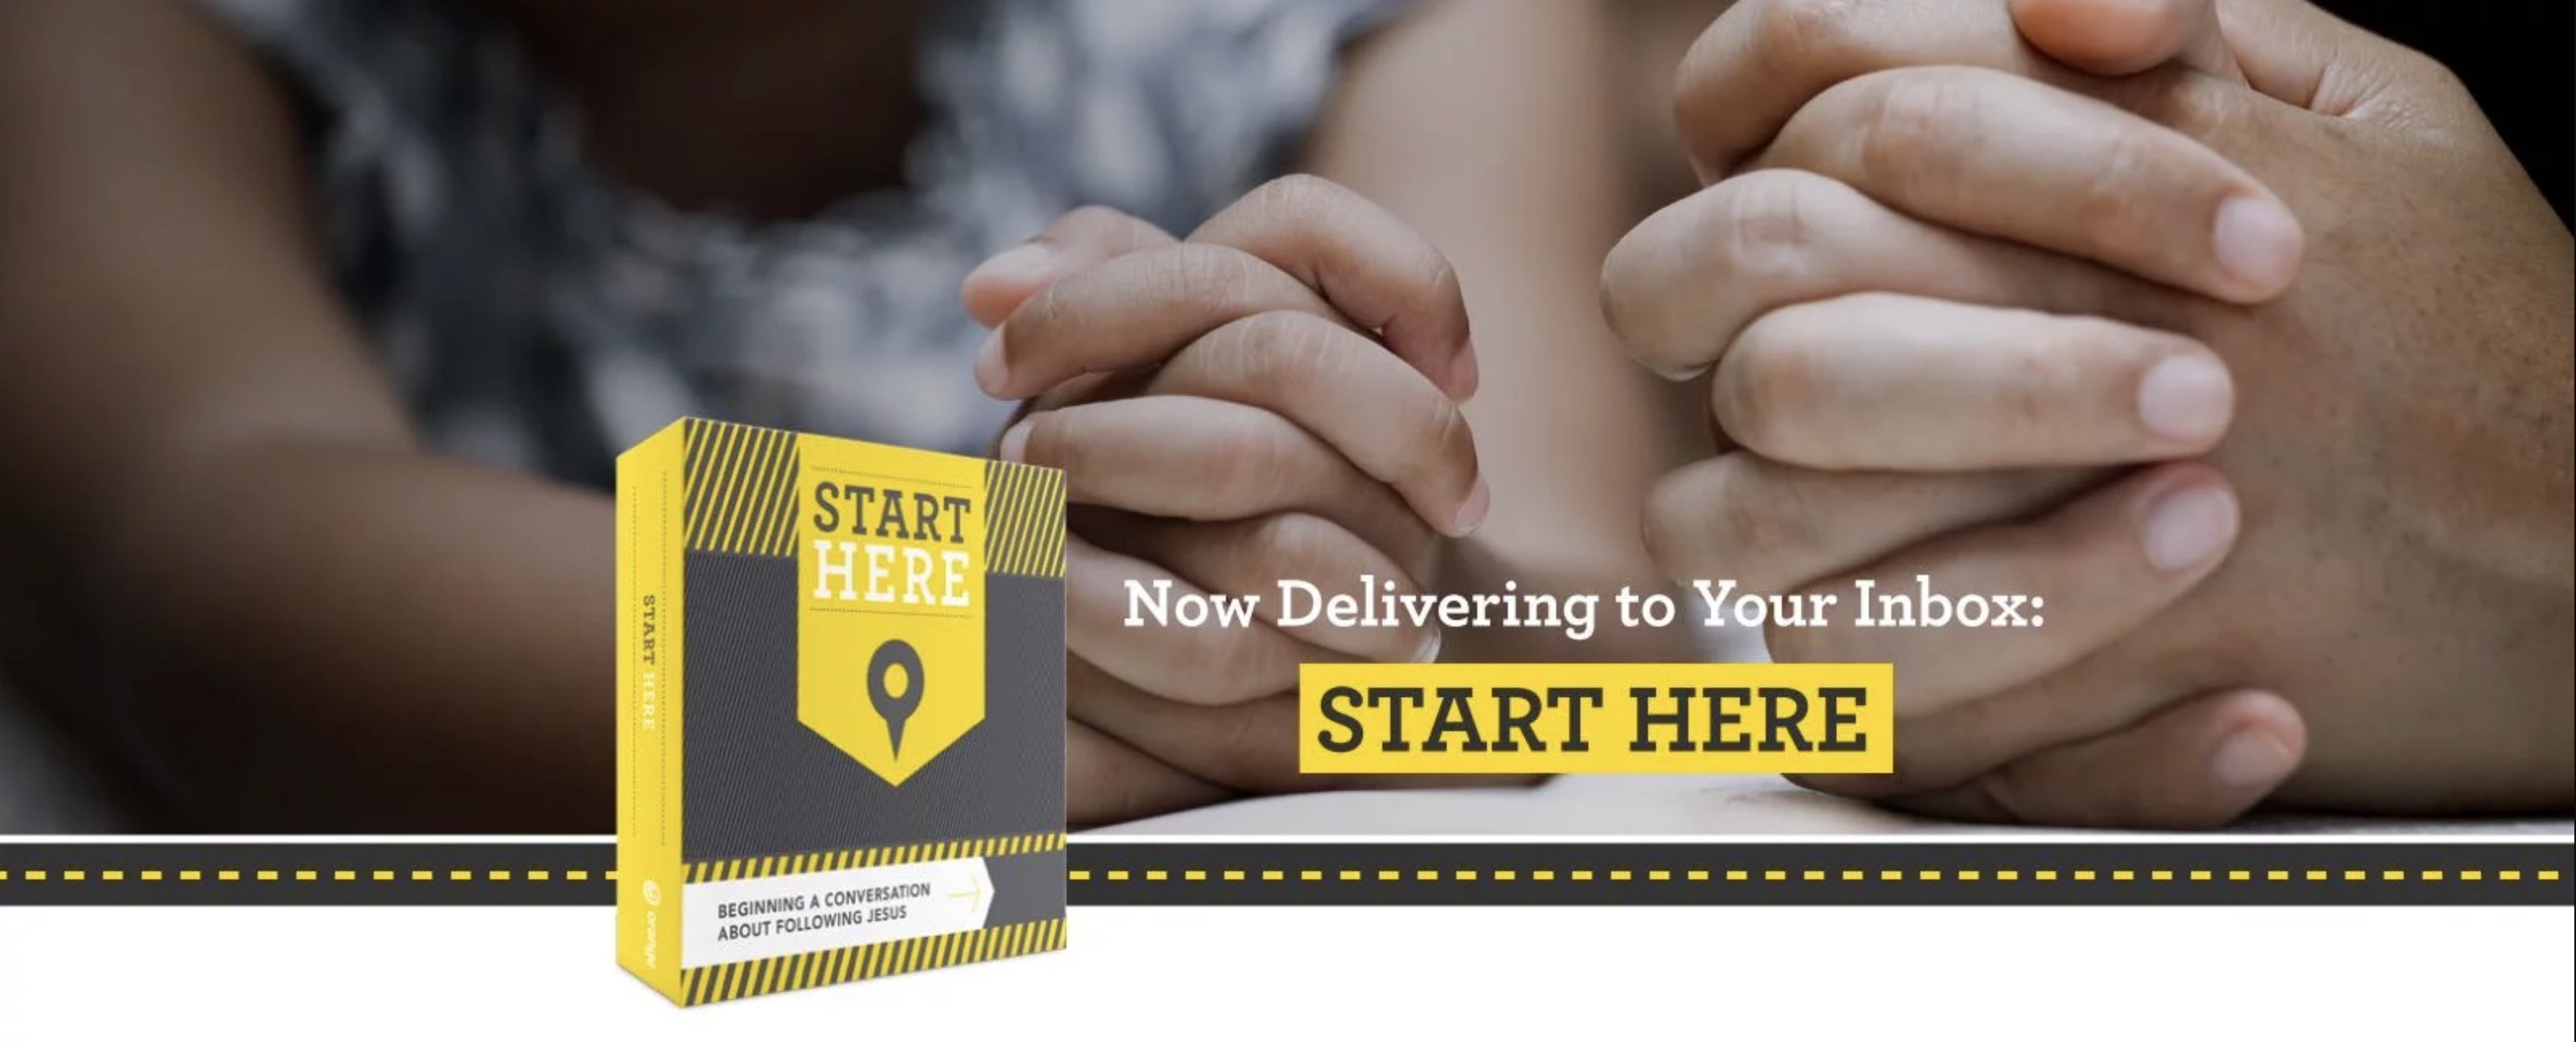 Start Here is a free downloadable gospel presentation for children's ministry leaders to use alongside parents to teach kids about the most important decision in their life.